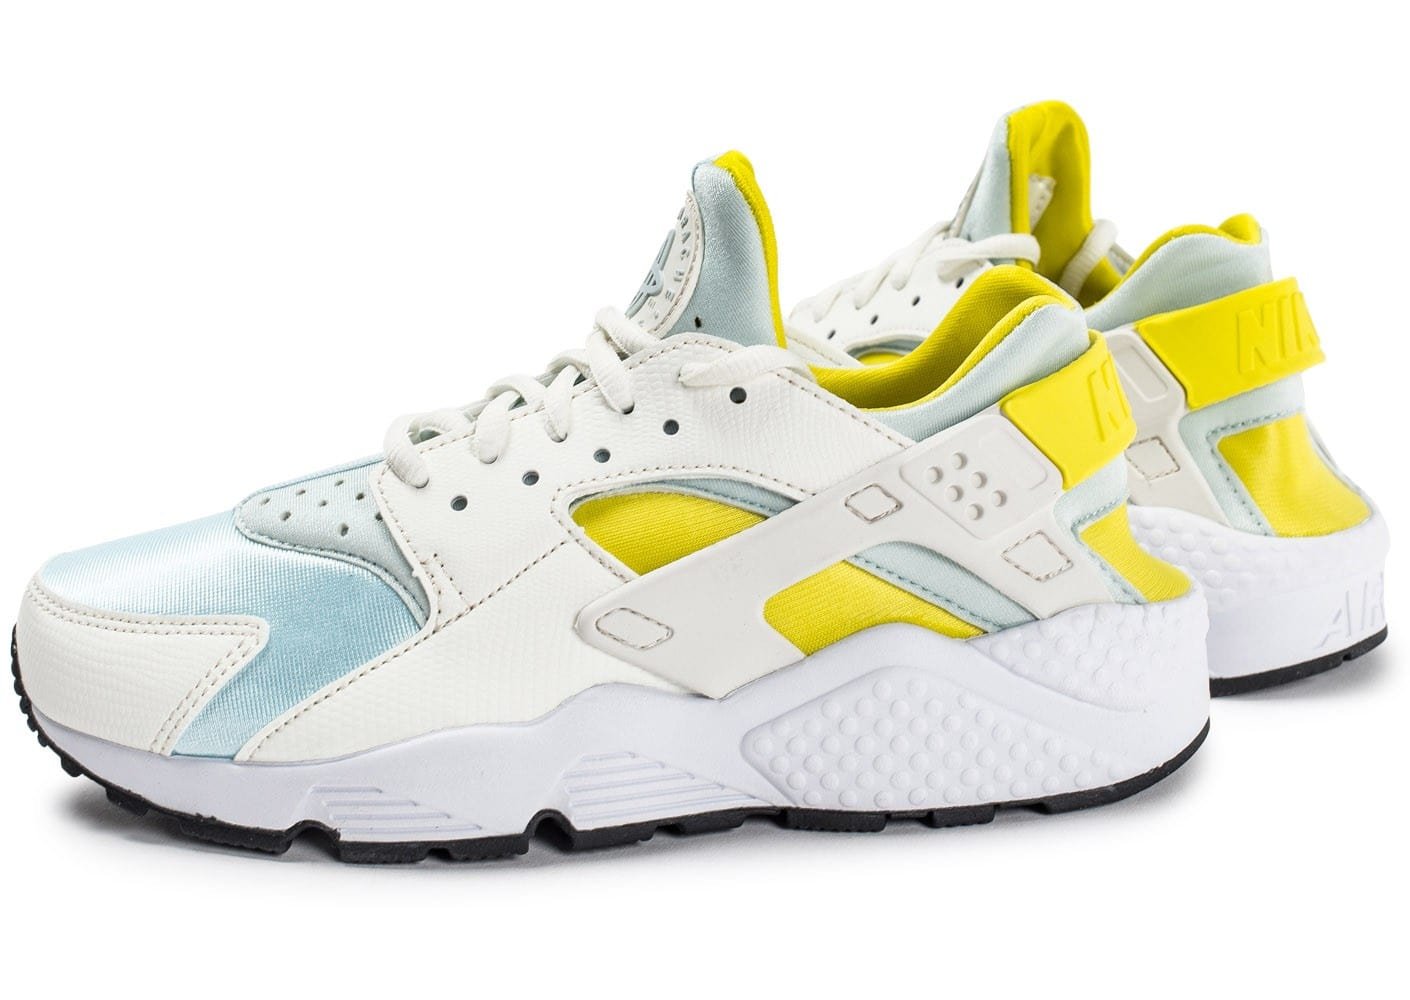 Air Huarache Run Bleu Et Jaune Nike Baskets/Running FemmeNike O5P4pG